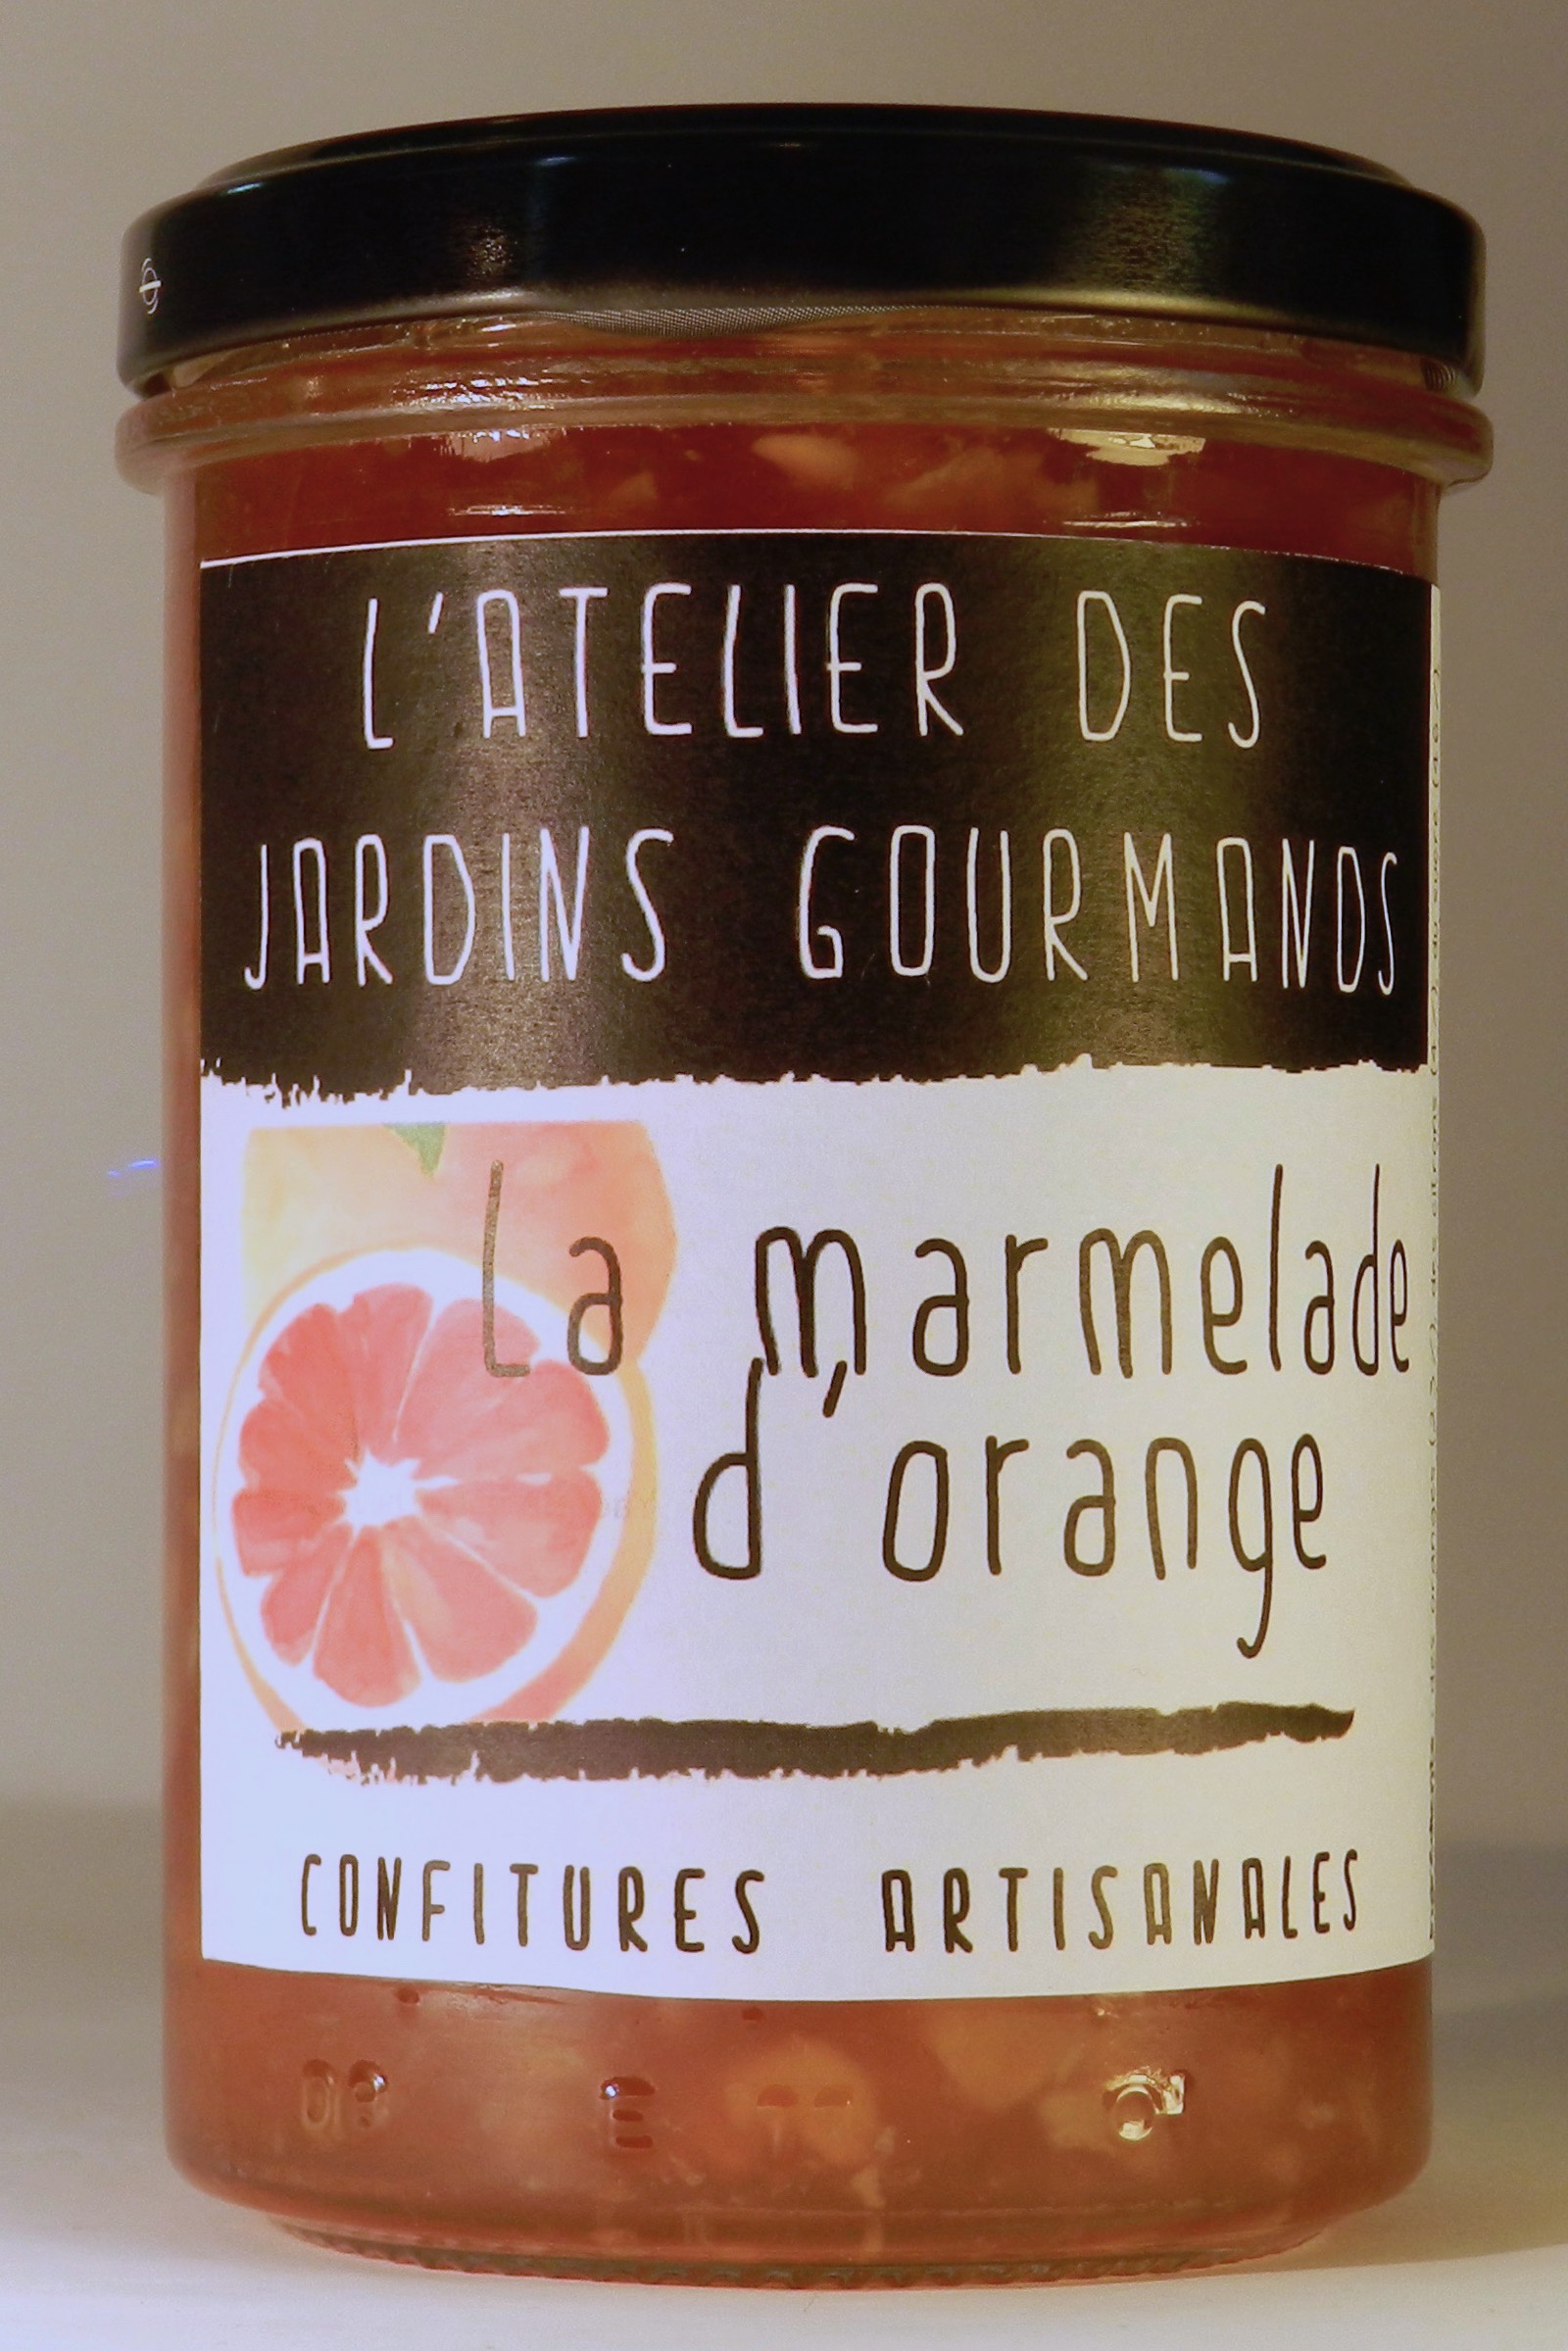 marmelade_orange confiture atelier des jardins gourmands